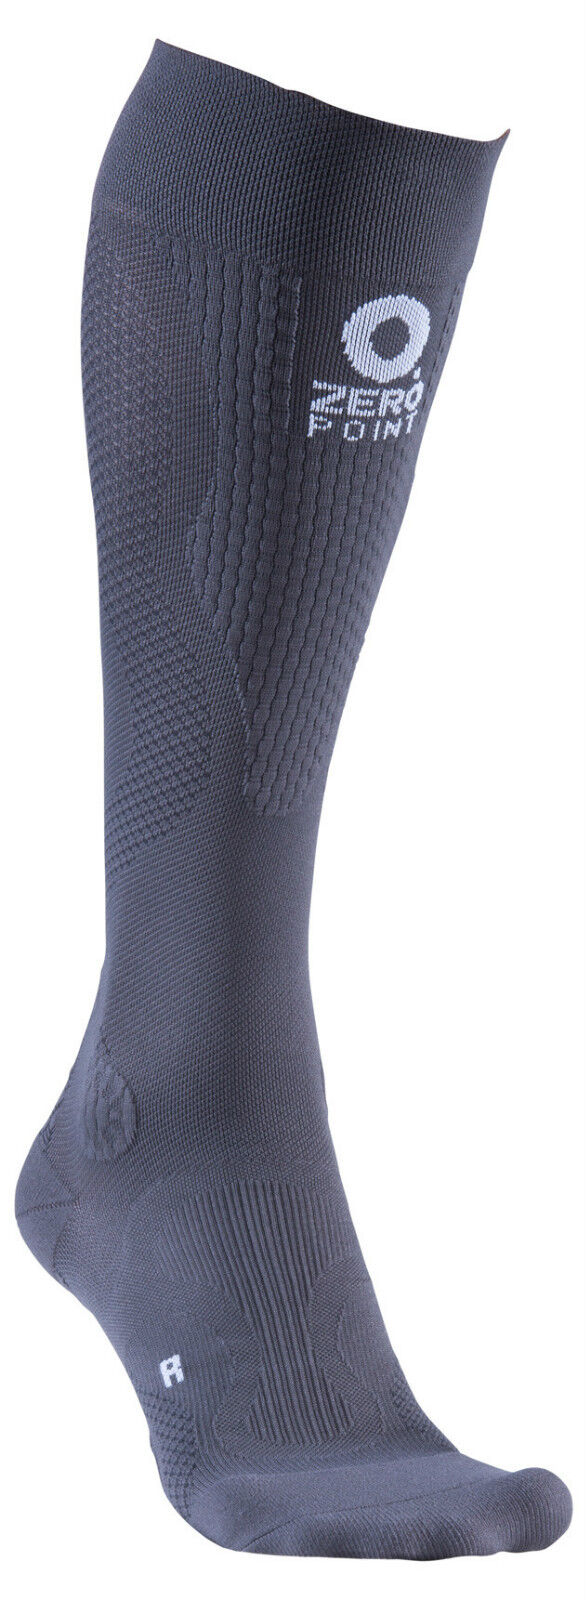 ZERO Punta Intenso Calze a compressione GRIGIO SCURO Cross Training Fitness